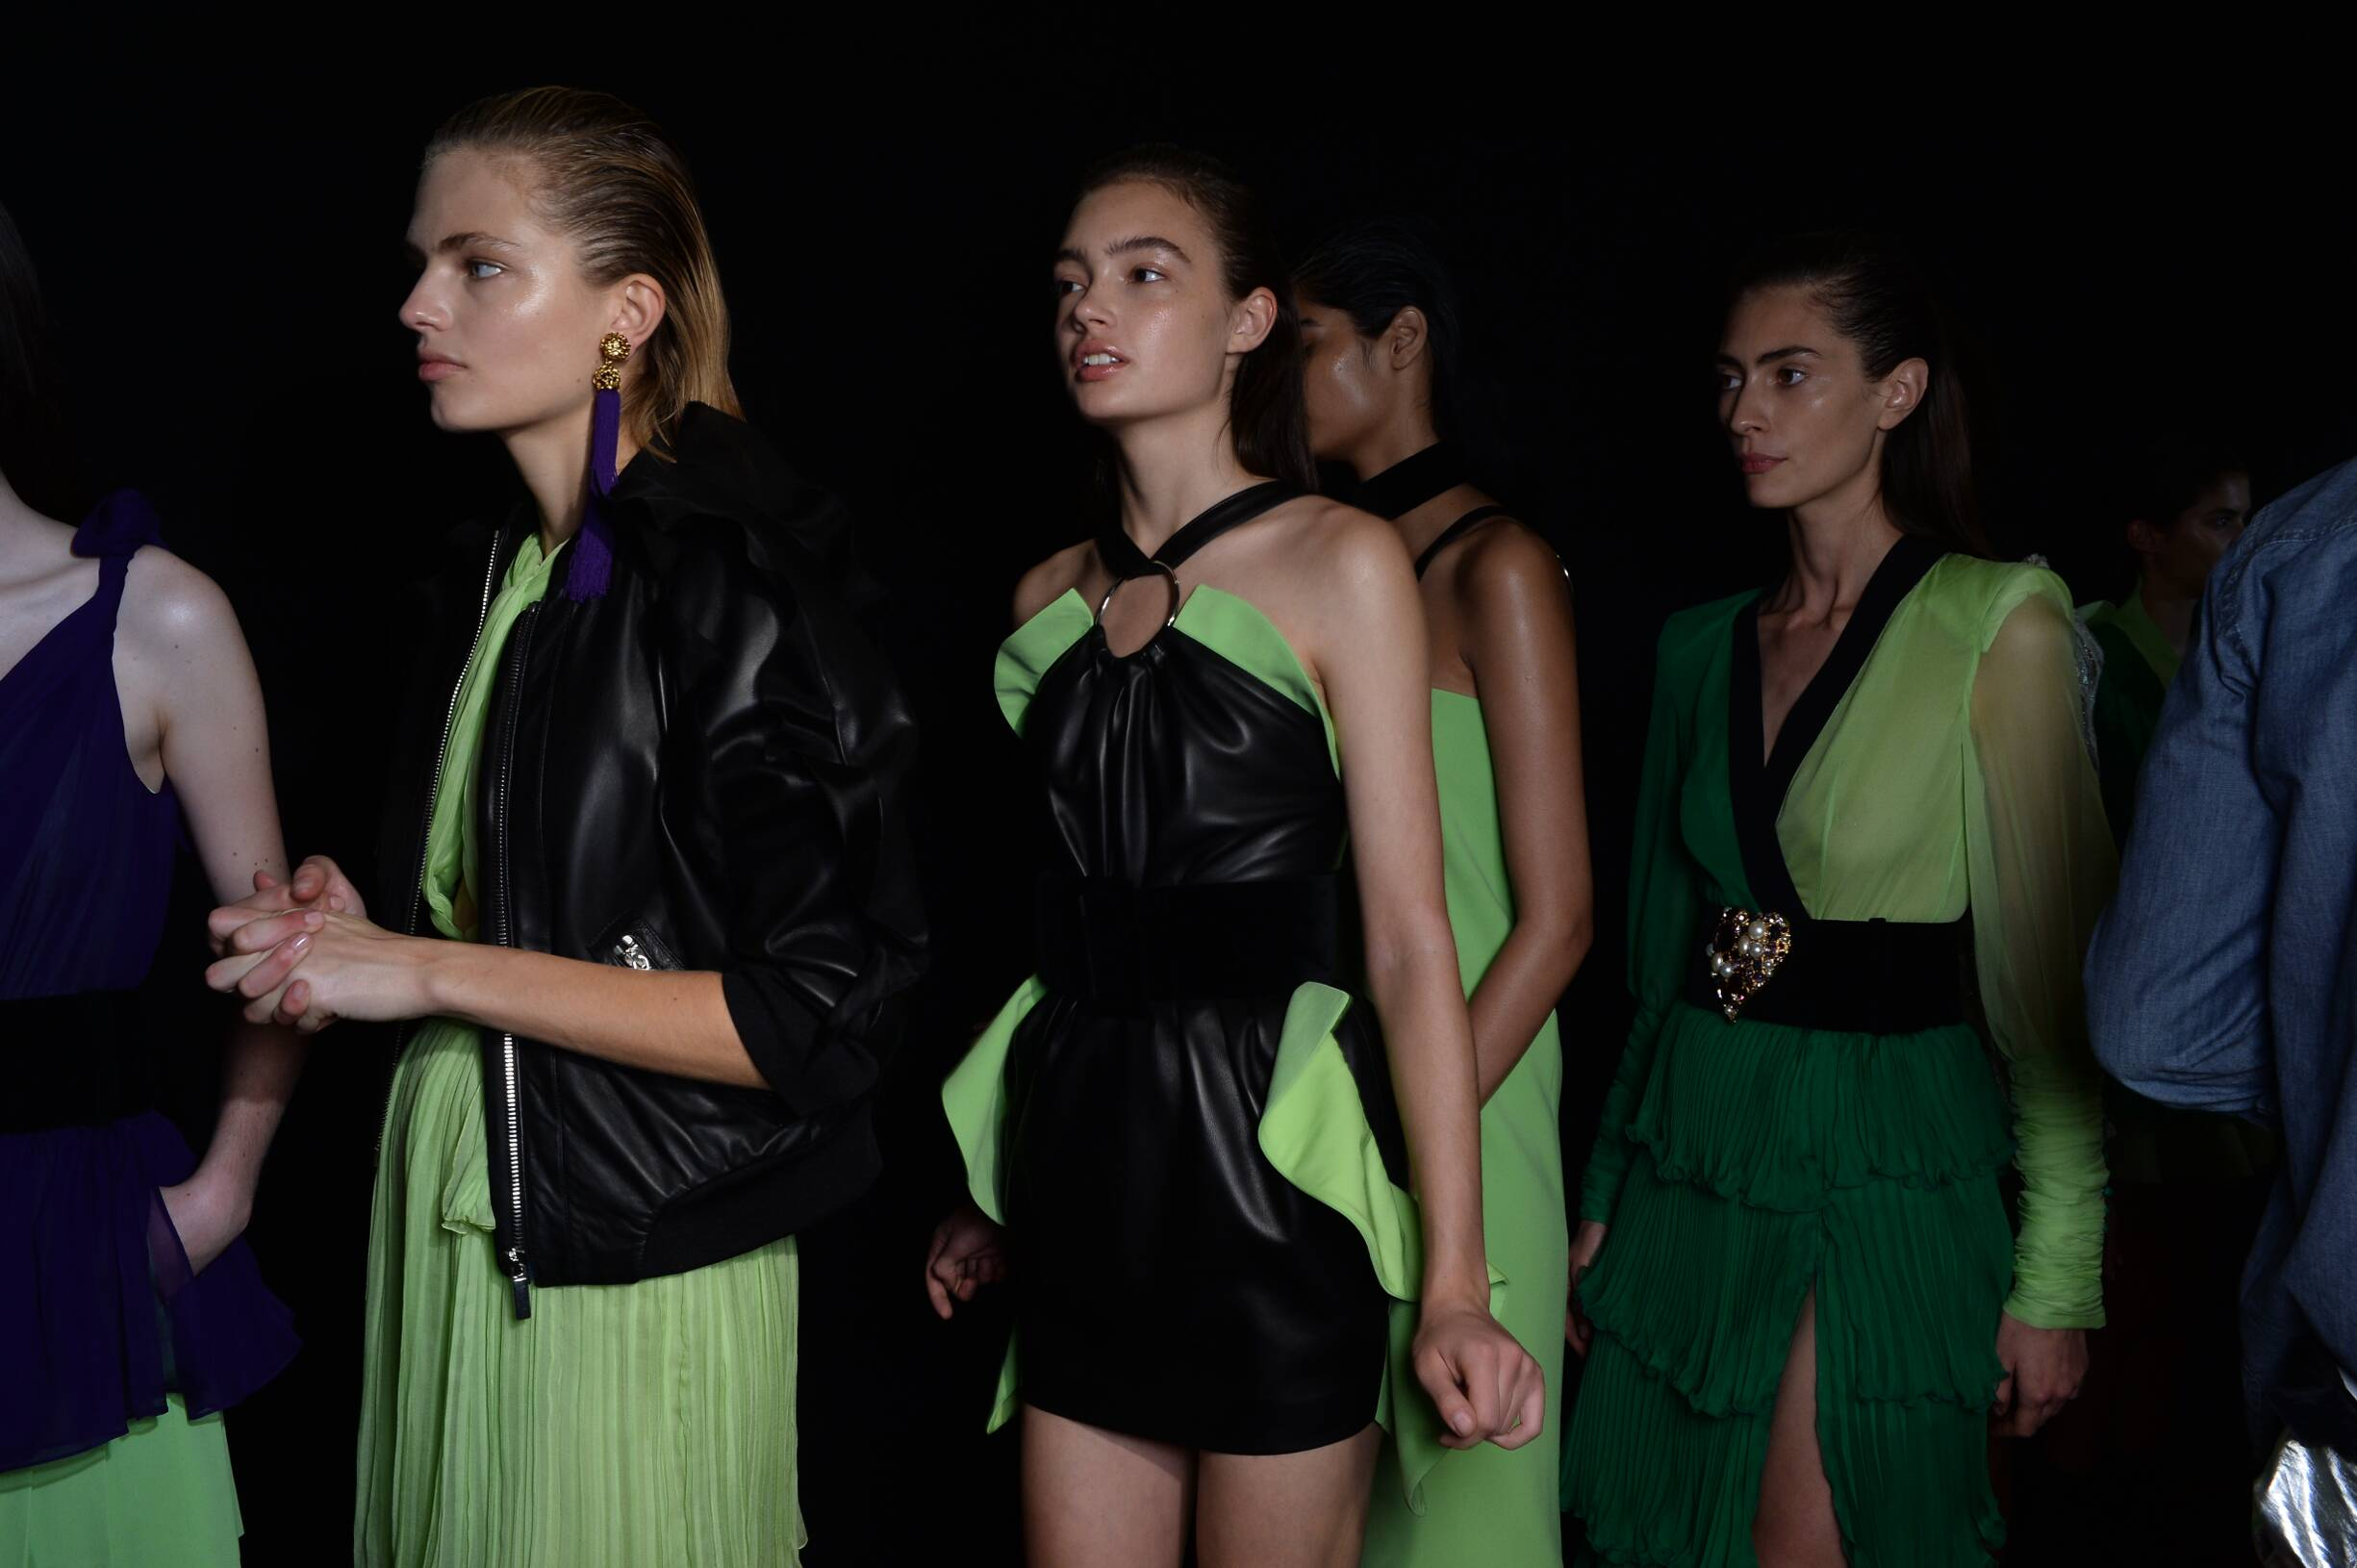 Backstage Women Emanuel Ungaro Models